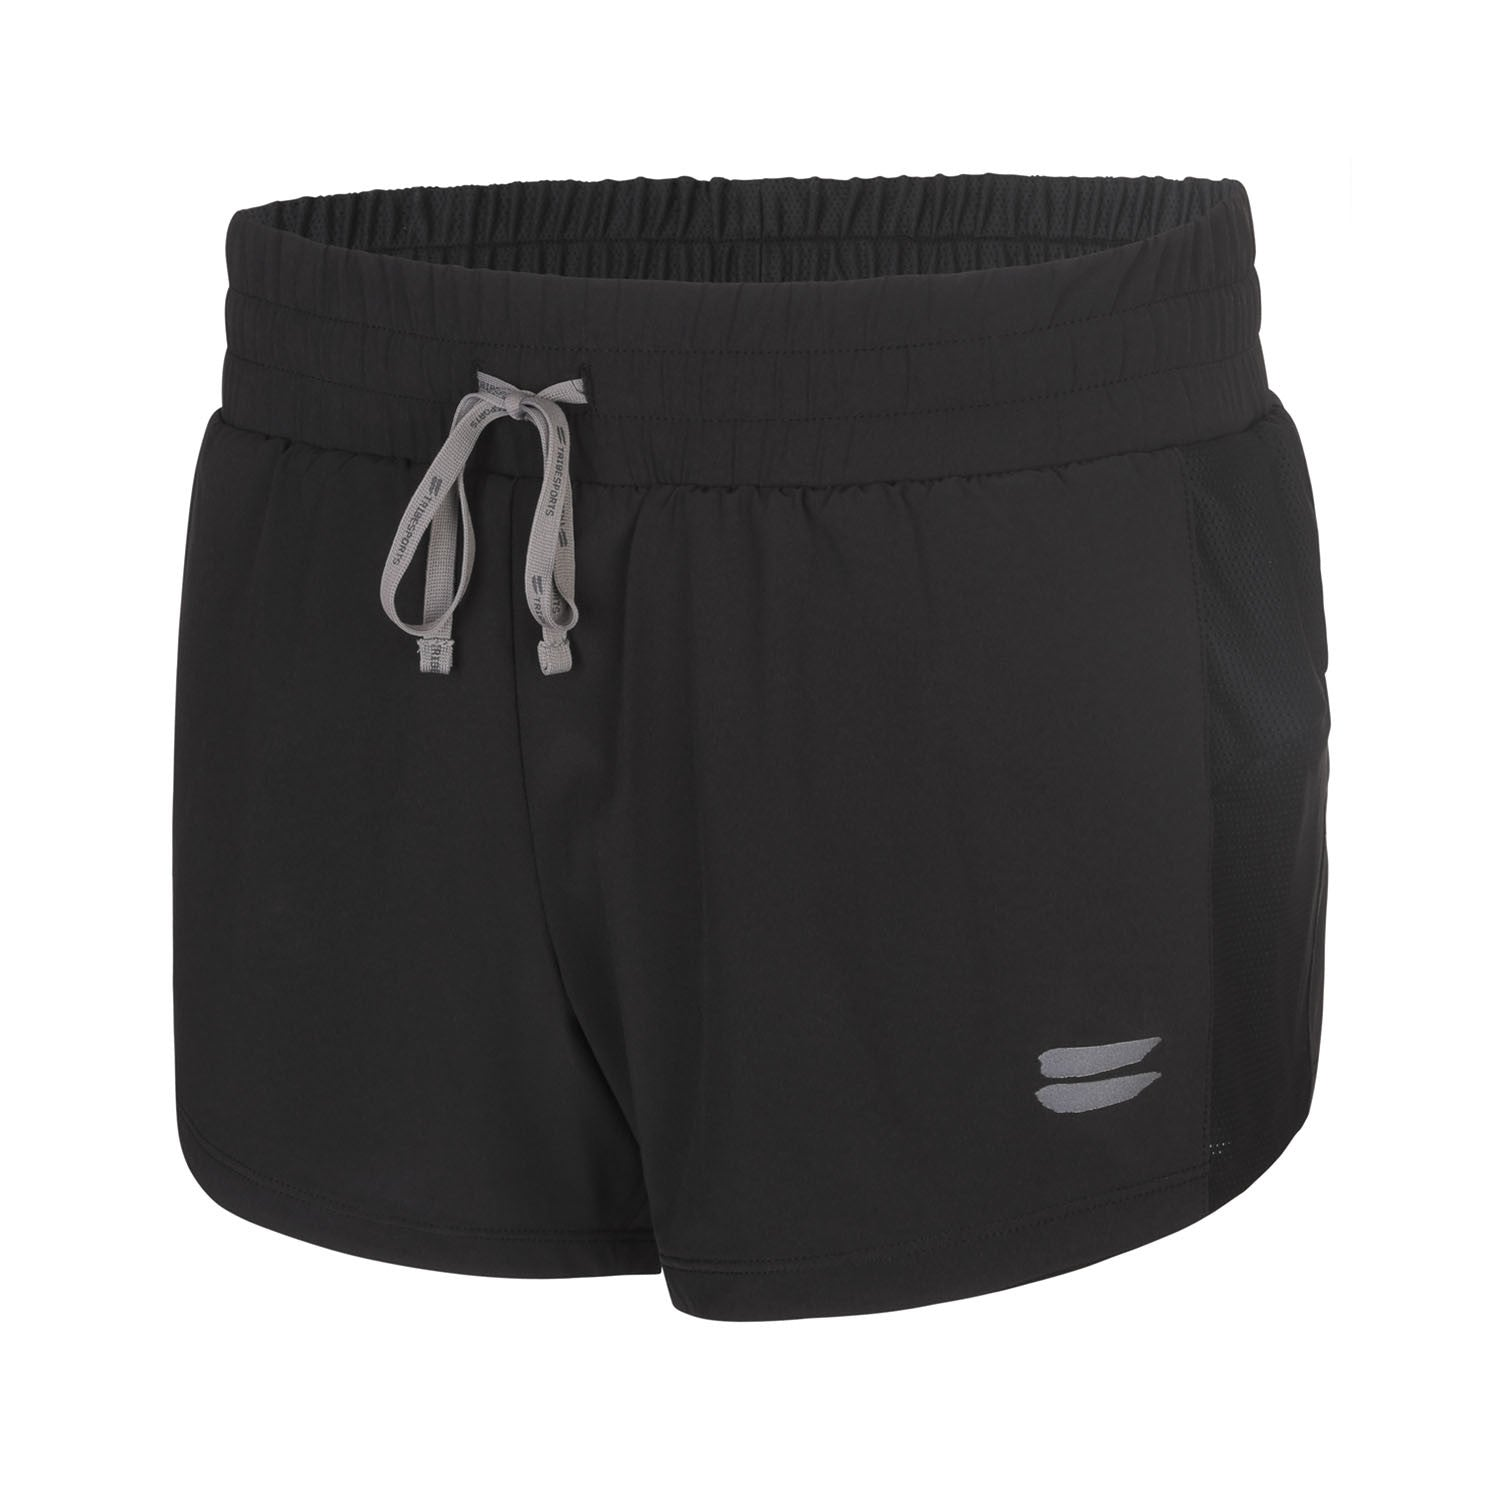 Women's 2 in 1 Running Shorts - Black , Tribesports - 1